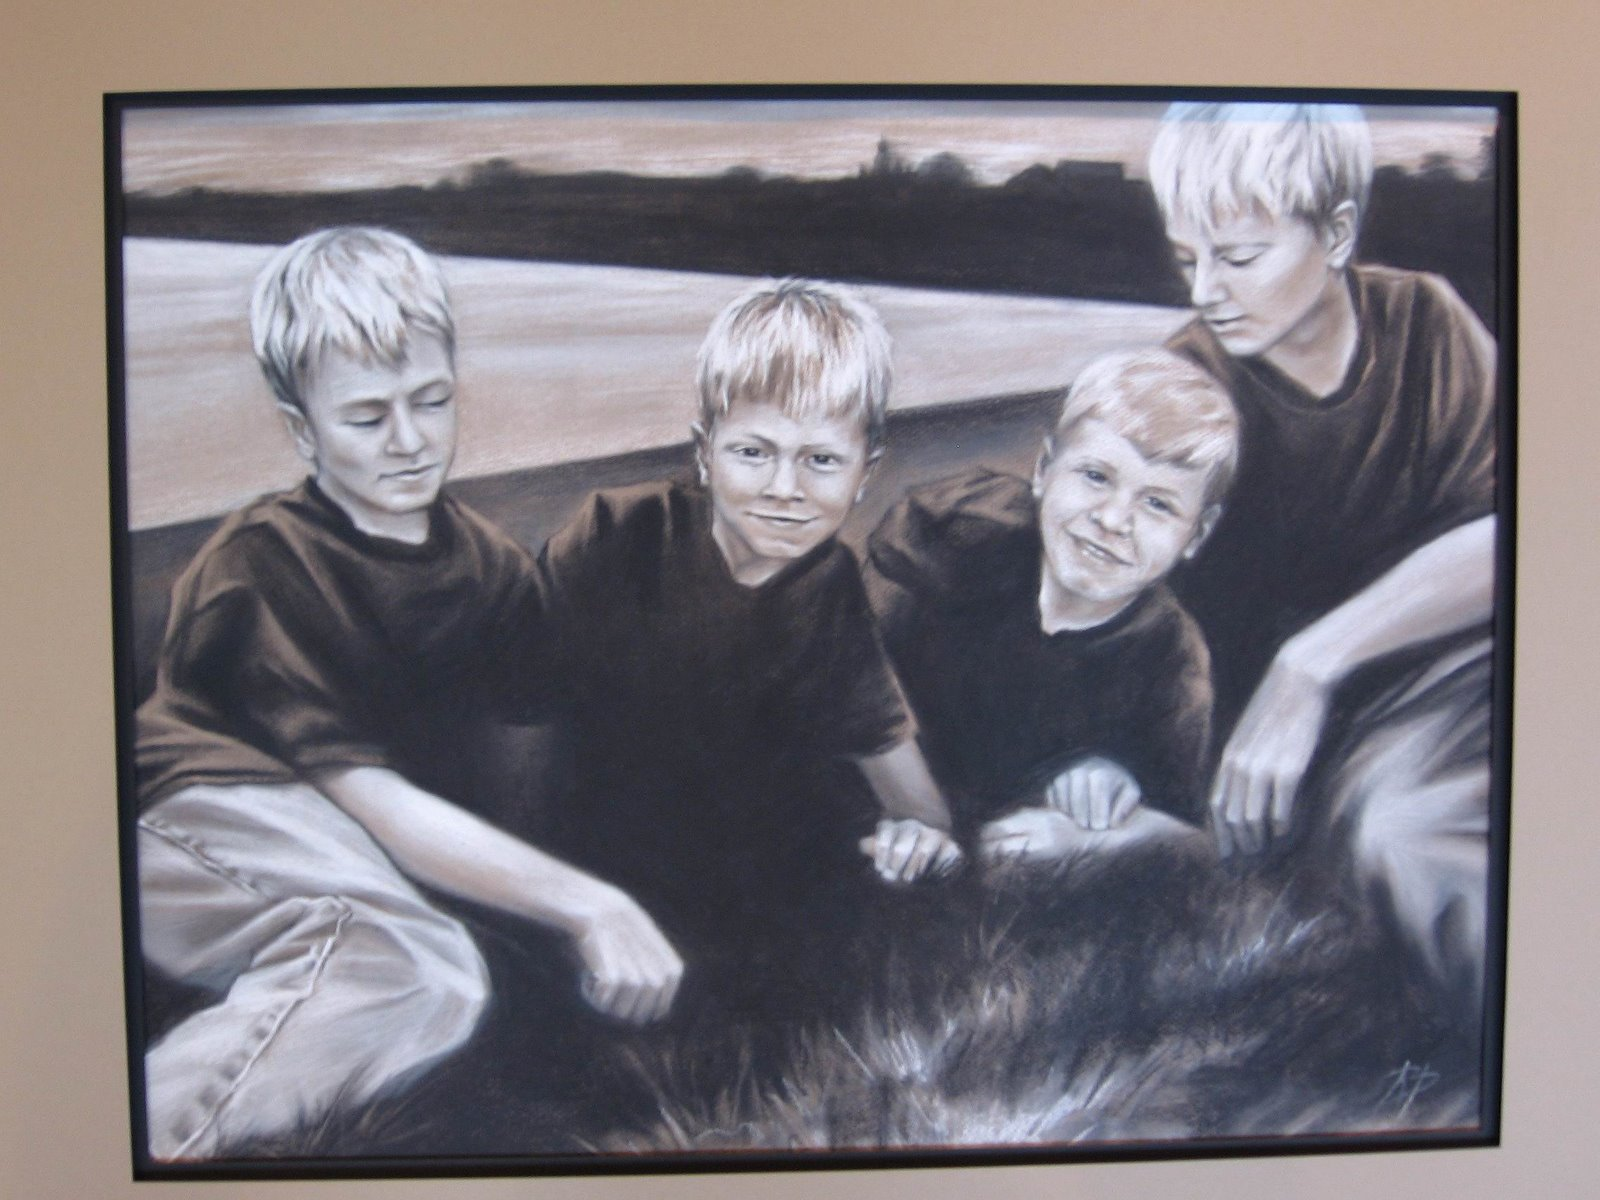 CUSTOM ART: Hold Your Place in Line for Portraits and other commissioned art